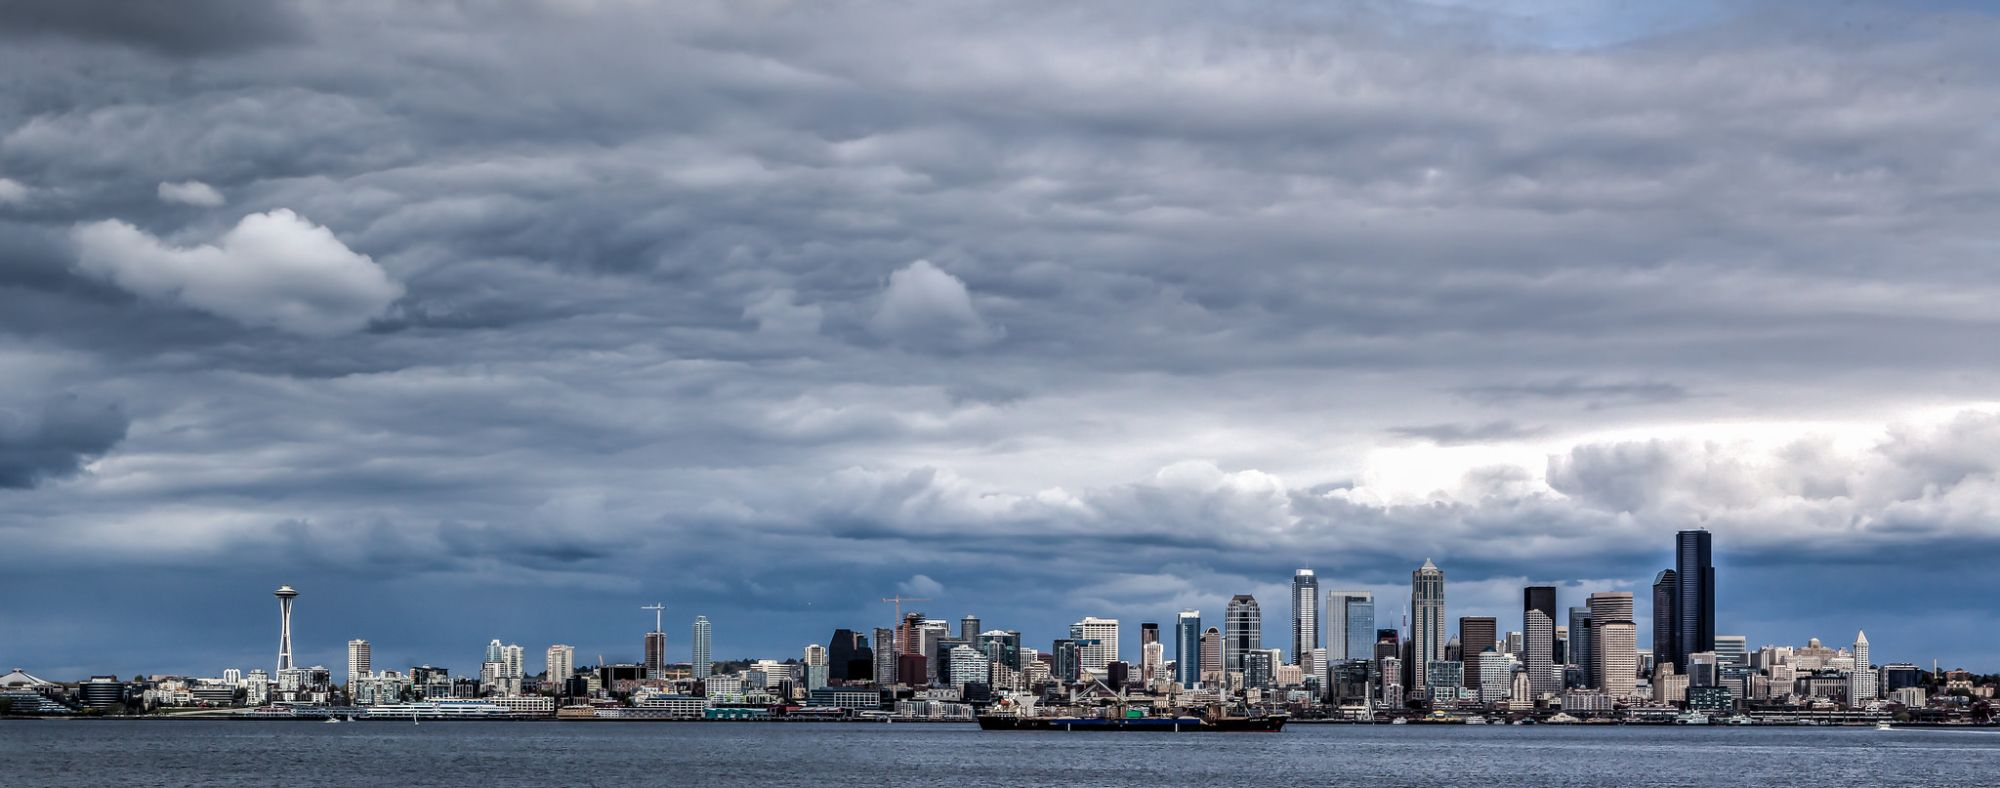 Best Viewpoints of Seattle